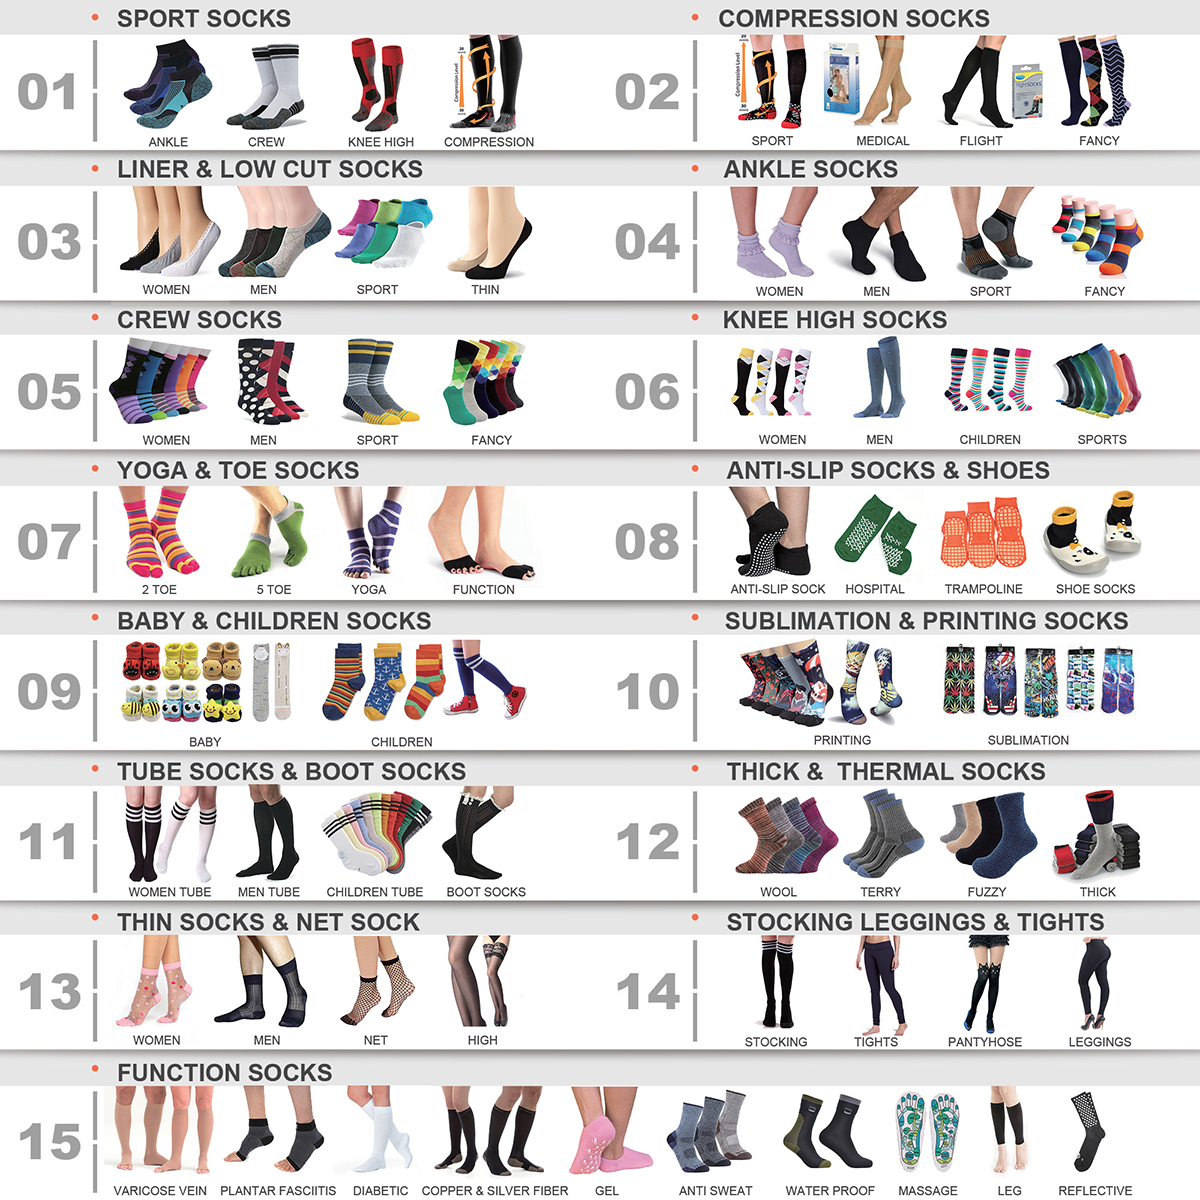 DL-I-0950 cute long socks cute knee socks cute knee high socks